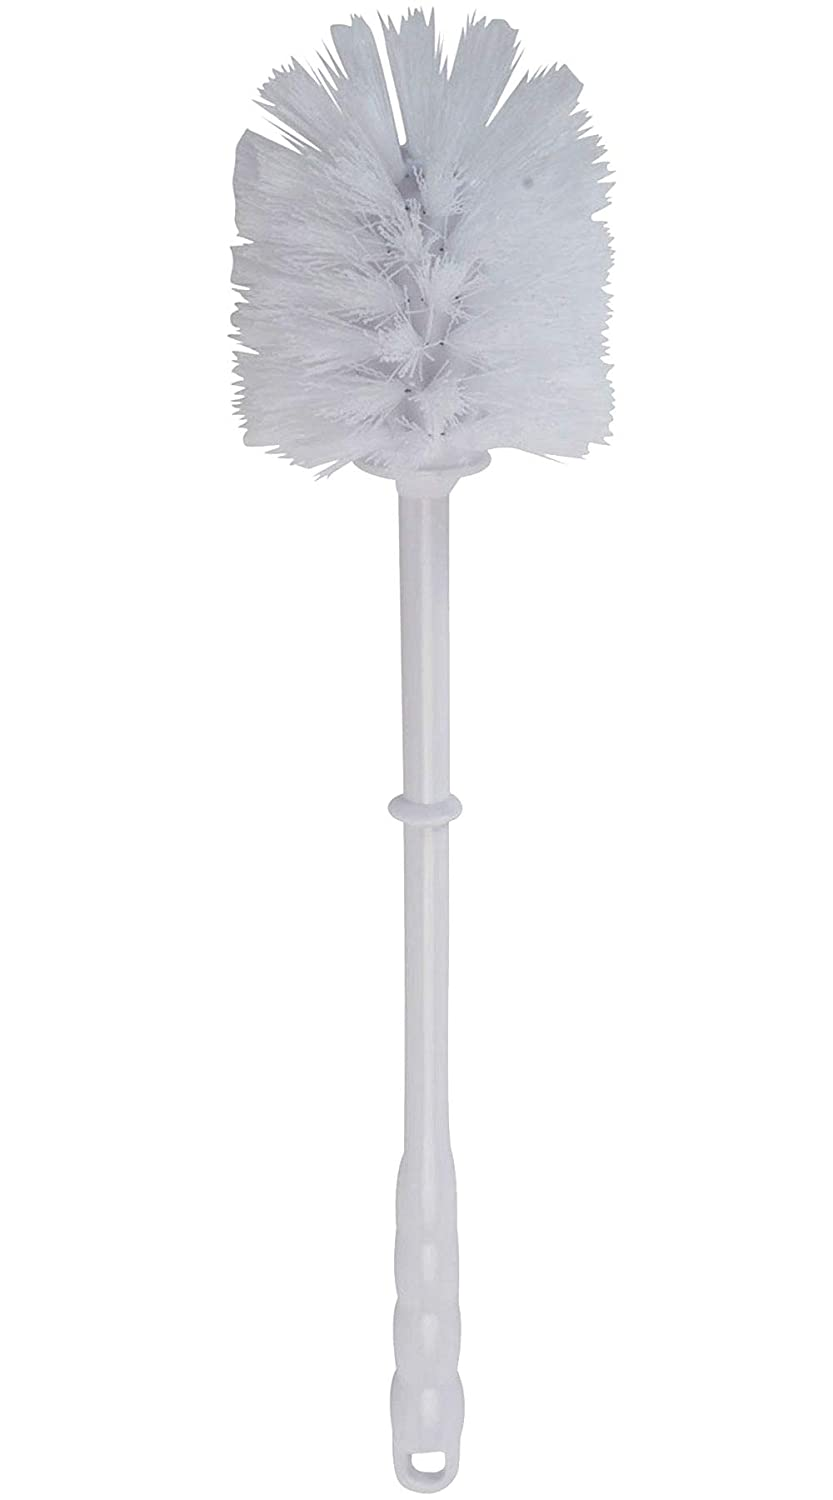 Bristles 4000 Commercial Toilet Bowl Brush Plastic Handle Polypropylene Fill White